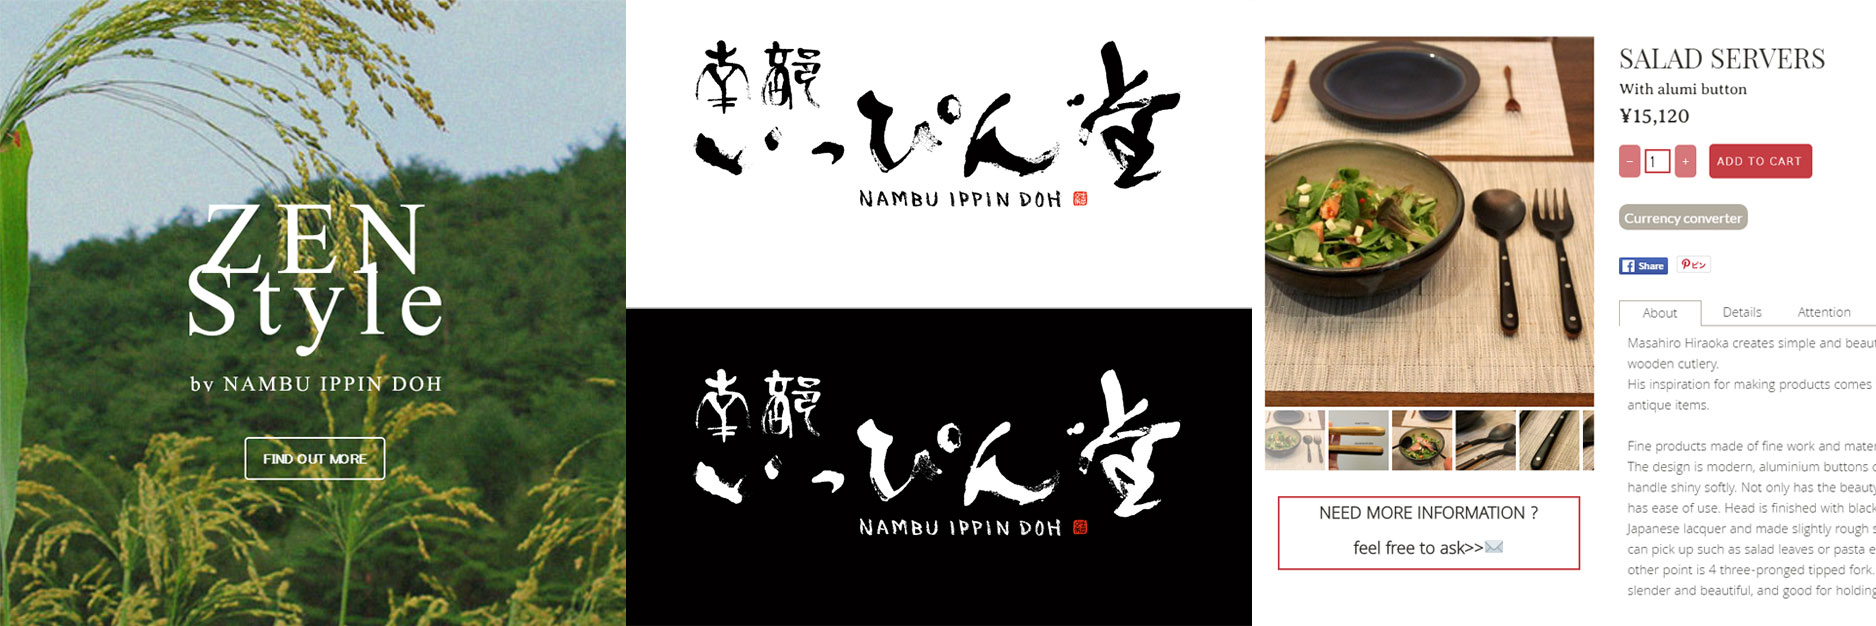 NAMABU IPPIN DOH WEBSITE IMAGES